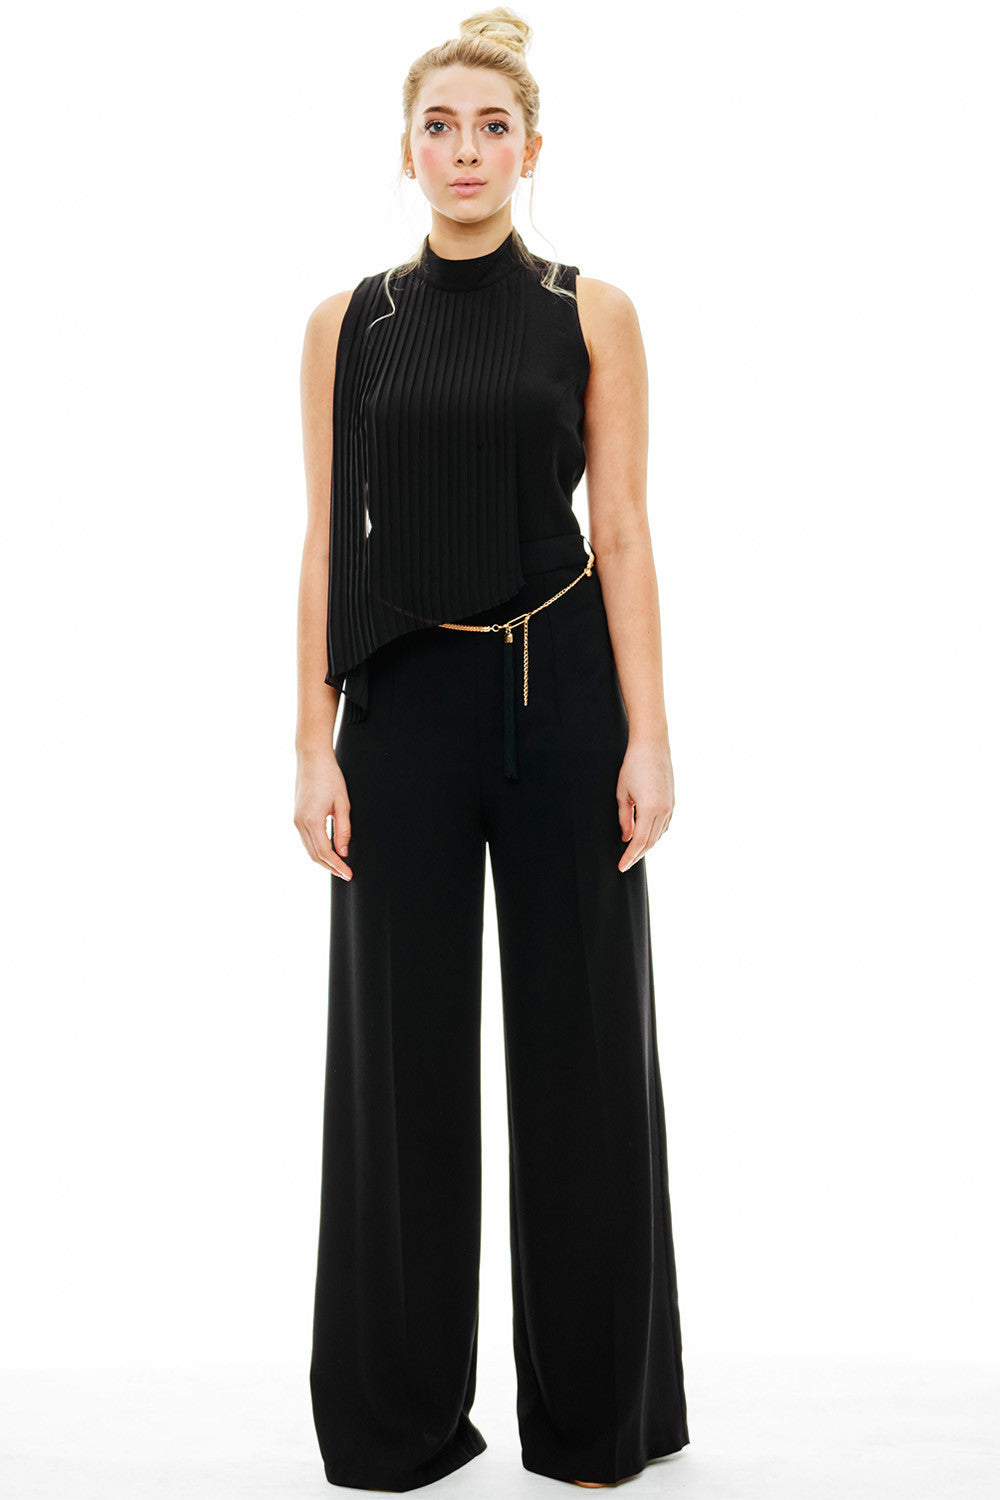 Veronika Jumpsuit